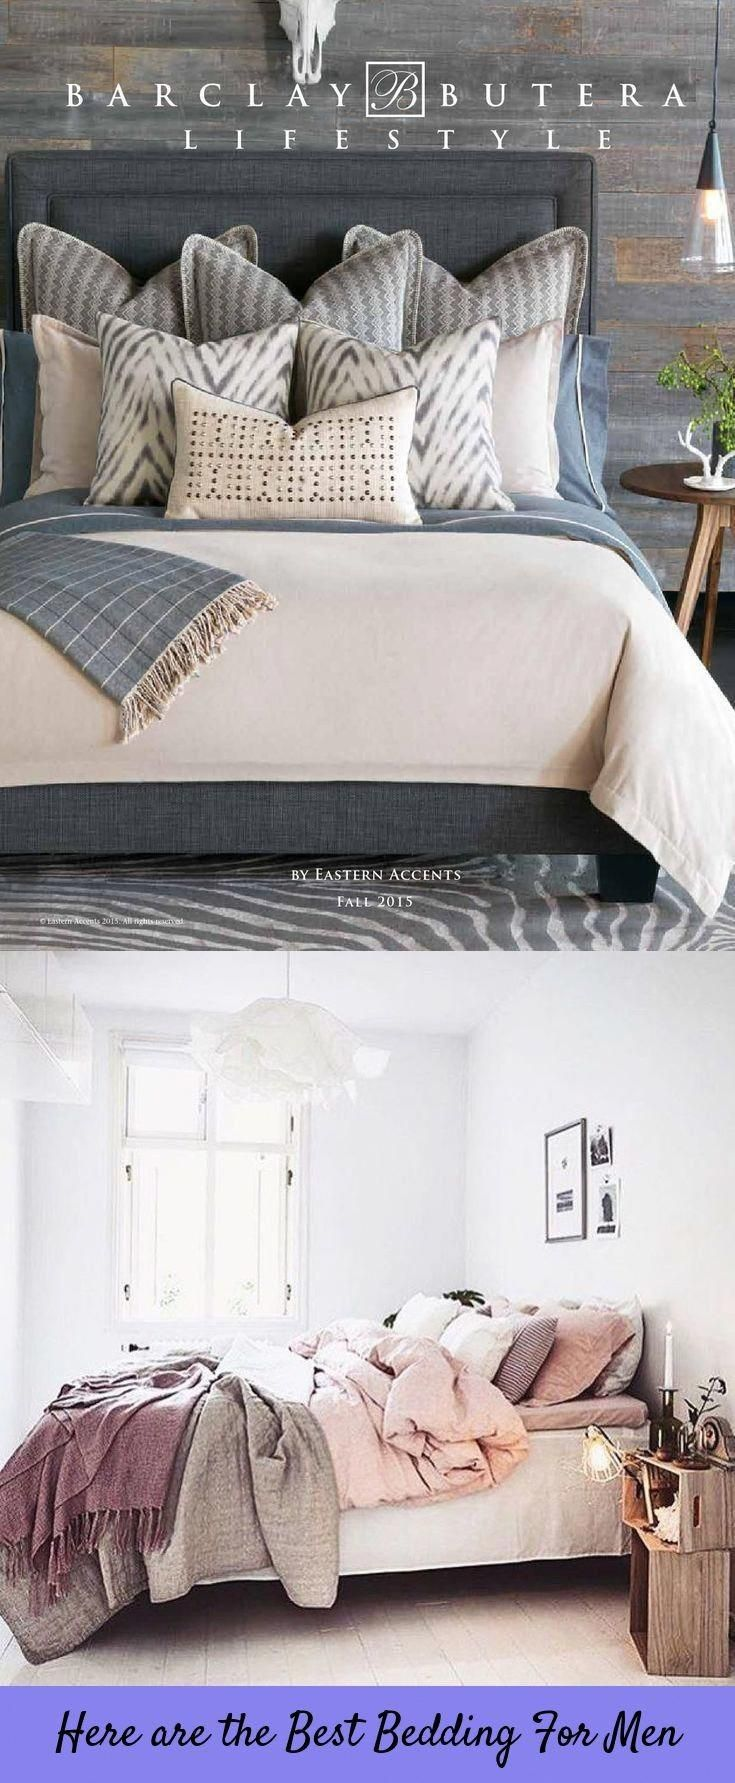 7 Cool Bed Linen Ideas Bedsheets